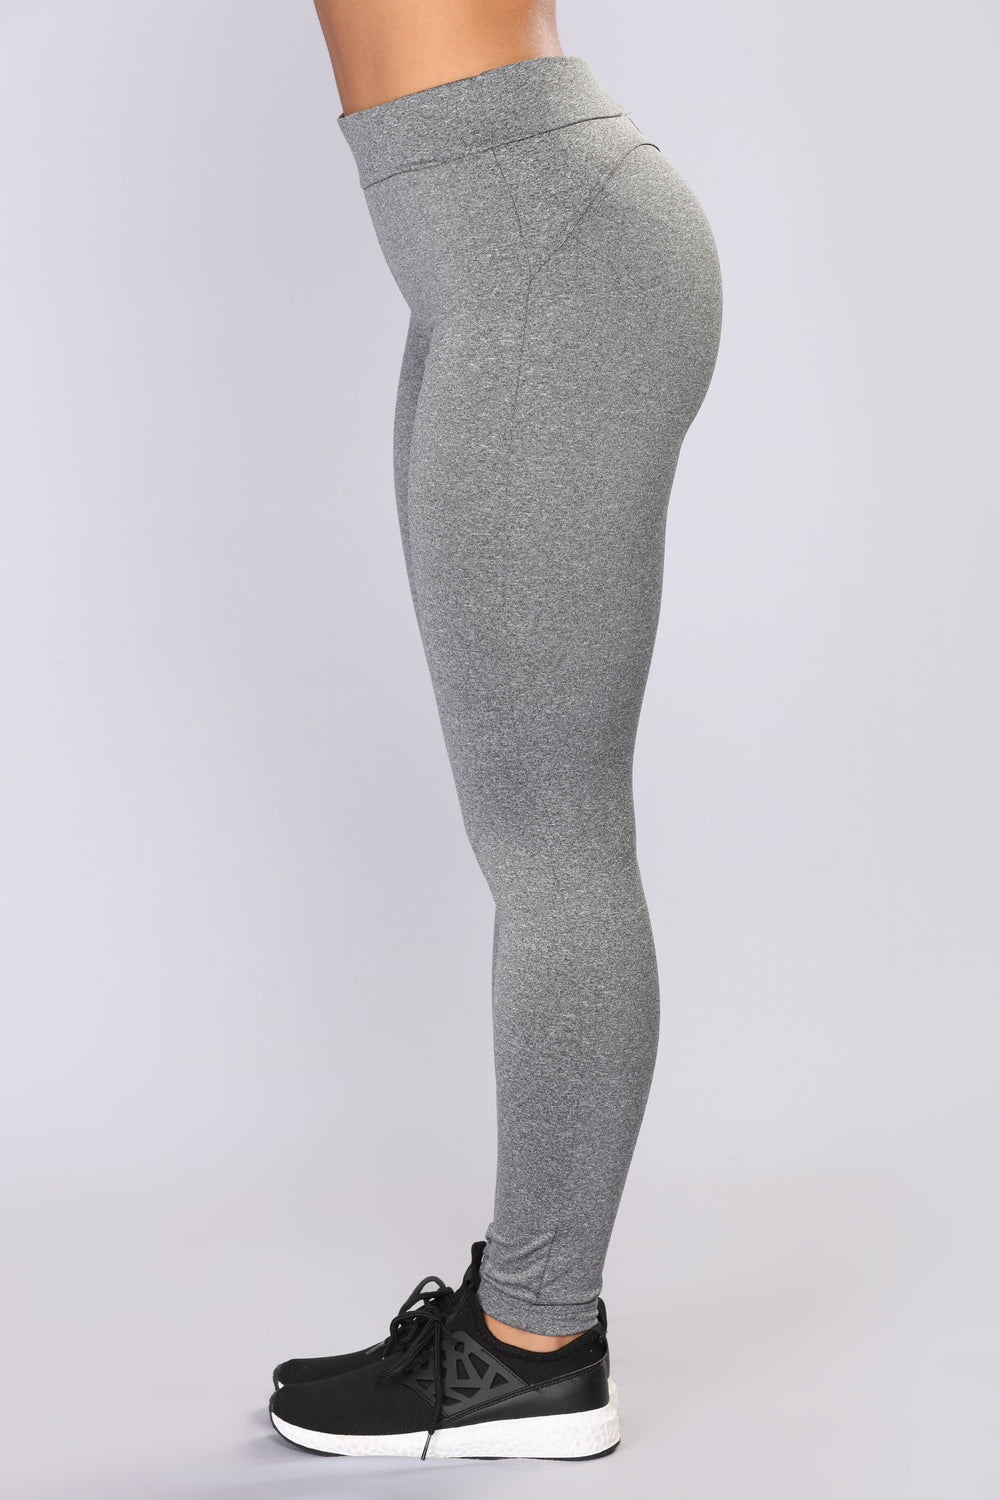 Bounce It Booty Shaping Active Leggings - Charcoal